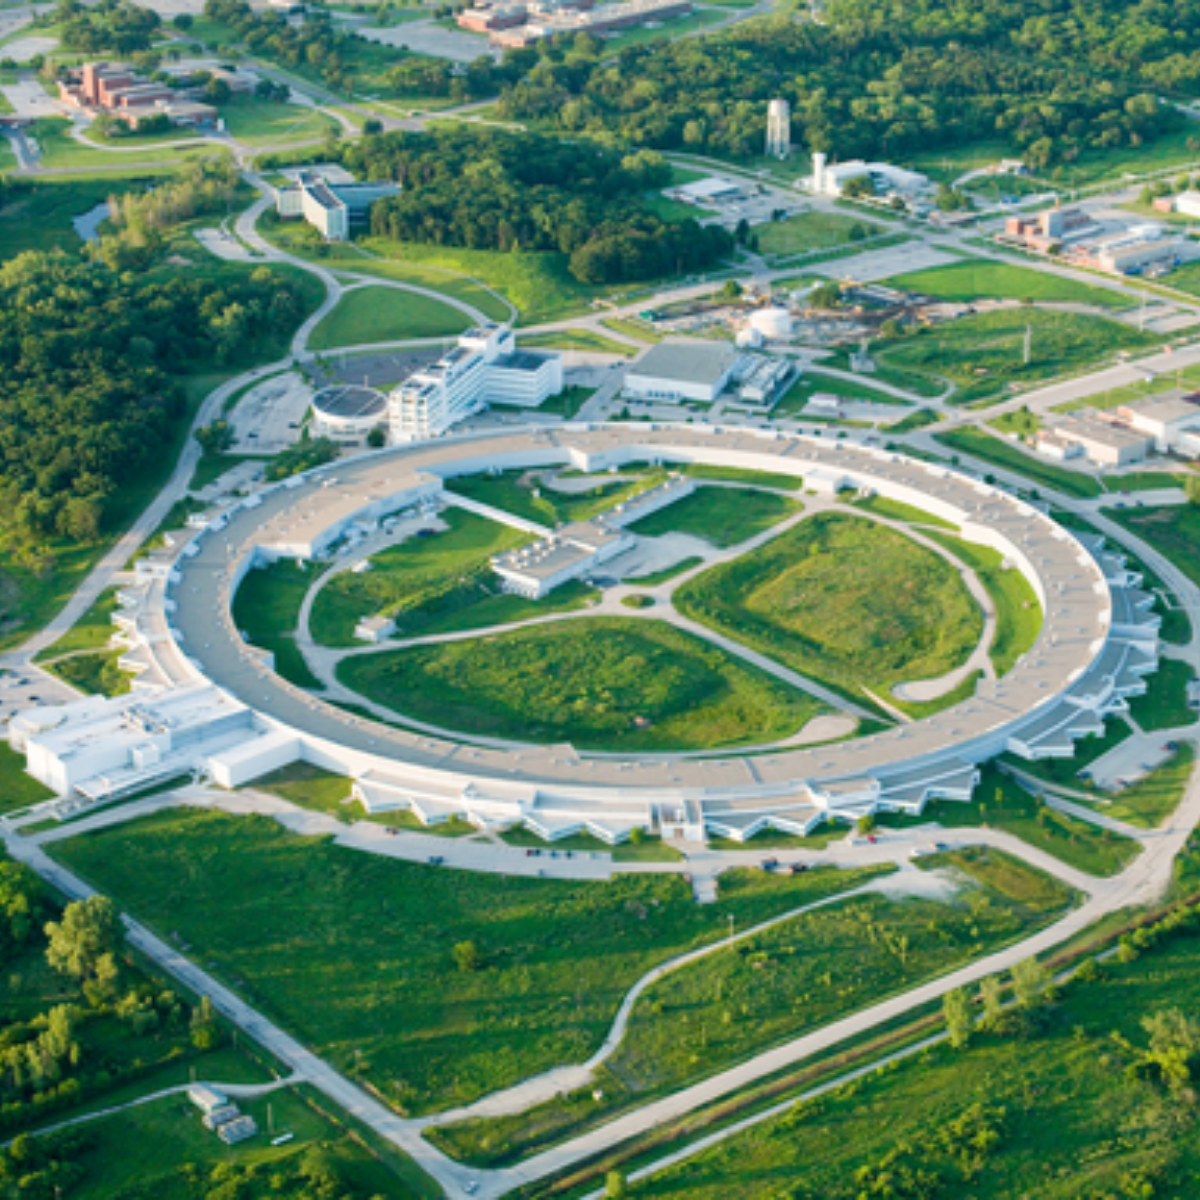 The Advanced Photon Source at Argonne National Lab, located about 20 miles southwest of downtown Chicago. (Photo courtesy of Argonne National Laboratory)